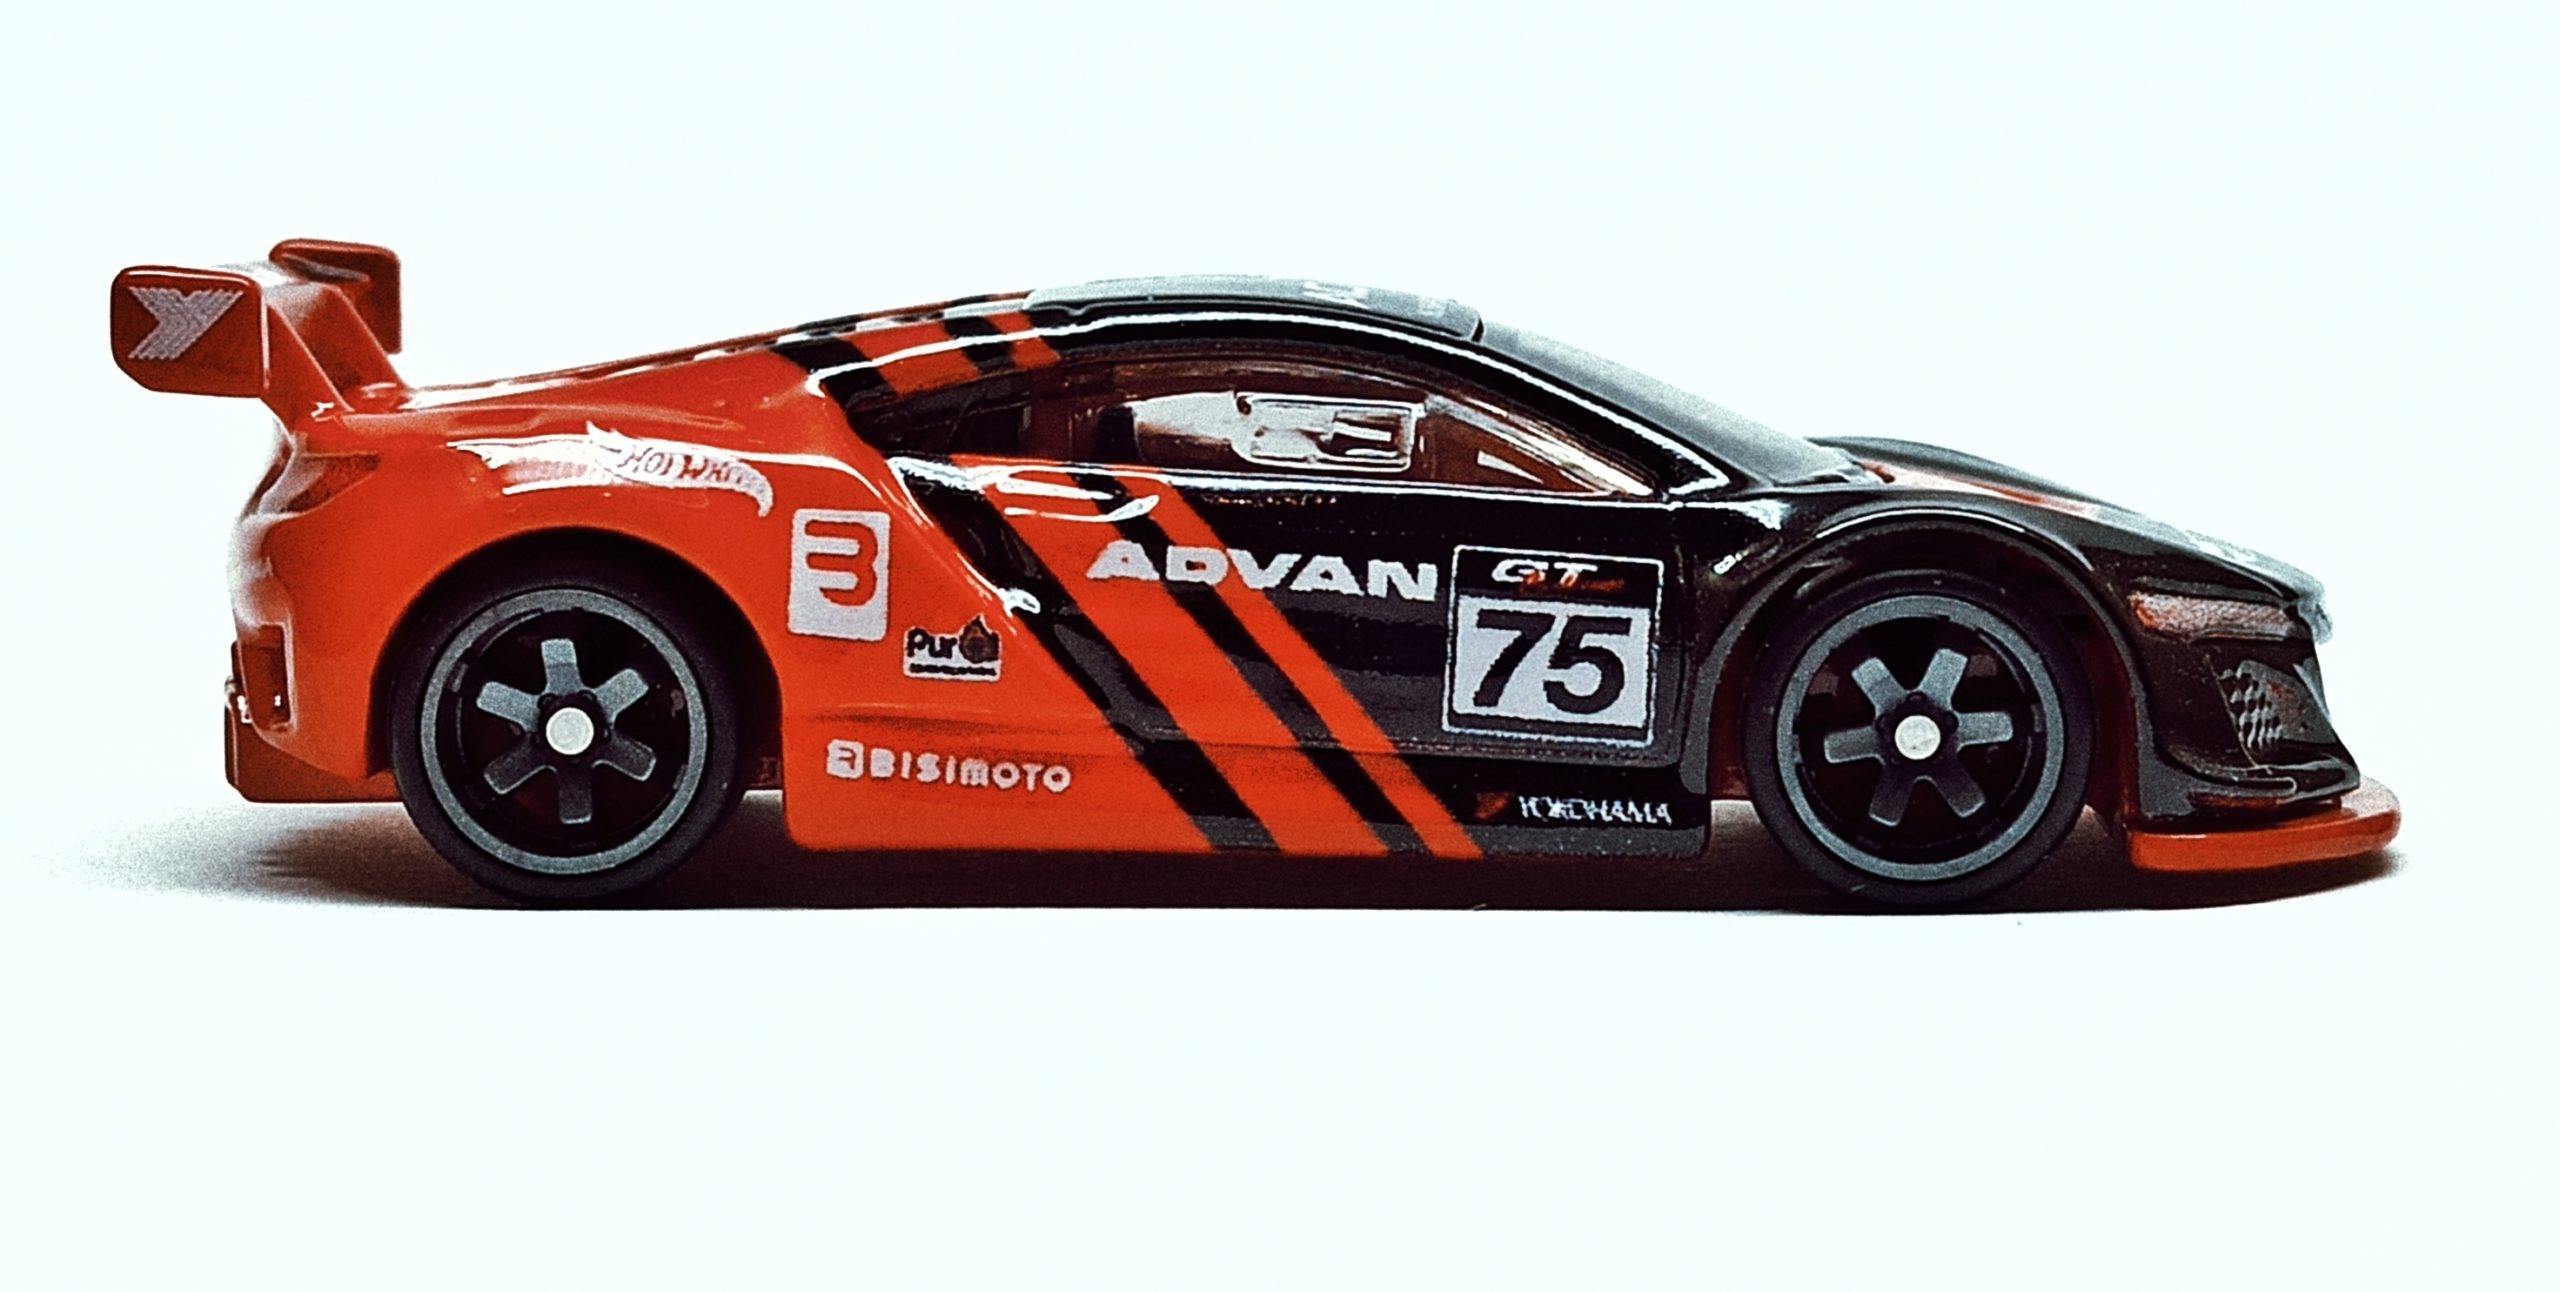 Hot Wheels Acura NSX GT3 (FLD22) 2019 Replica Entertainment: Project Cars 2 black side